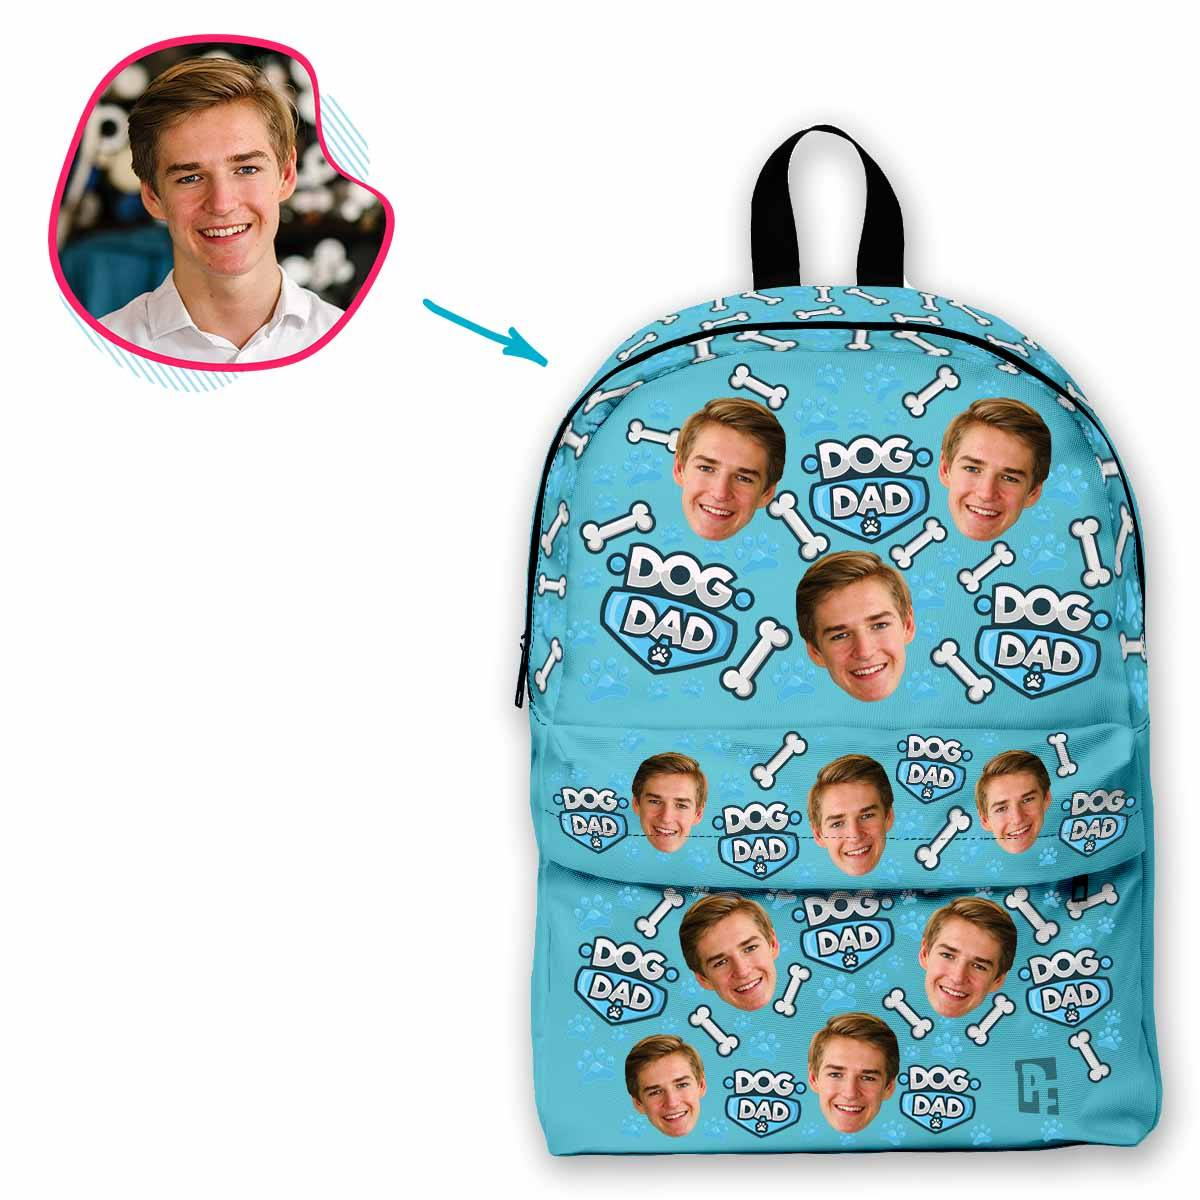 blue Dog Dad classic backpack personalized with photo of face printed on it